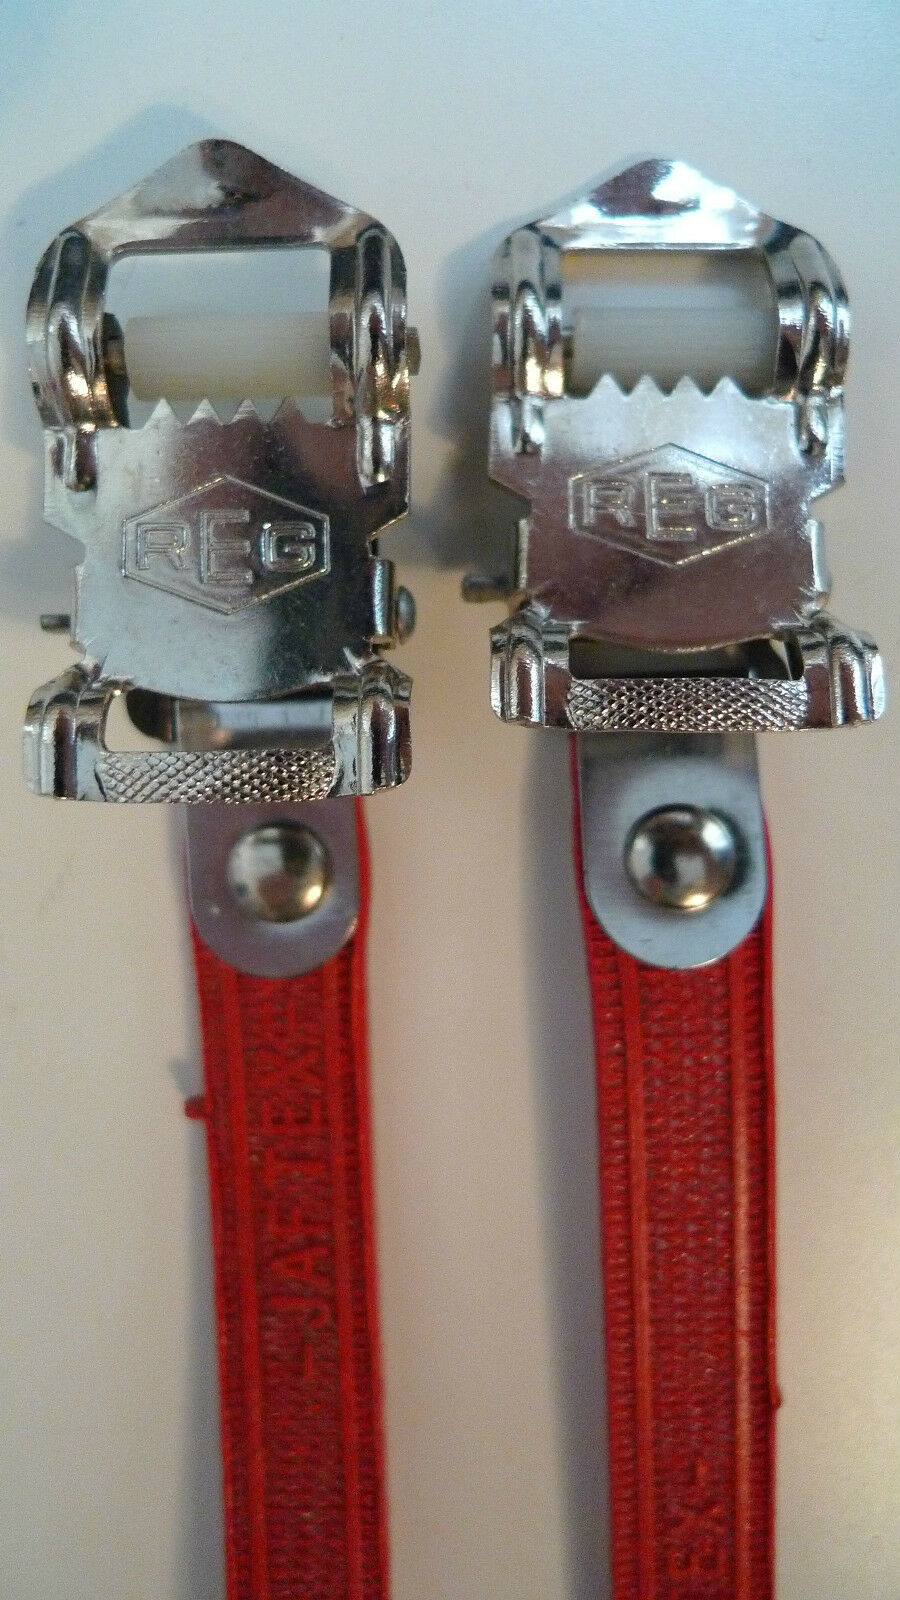 Vintage NOS Classic 80's REG  Italian Pedal Straps RED for your Vintage Ride  fast shipping worldwide